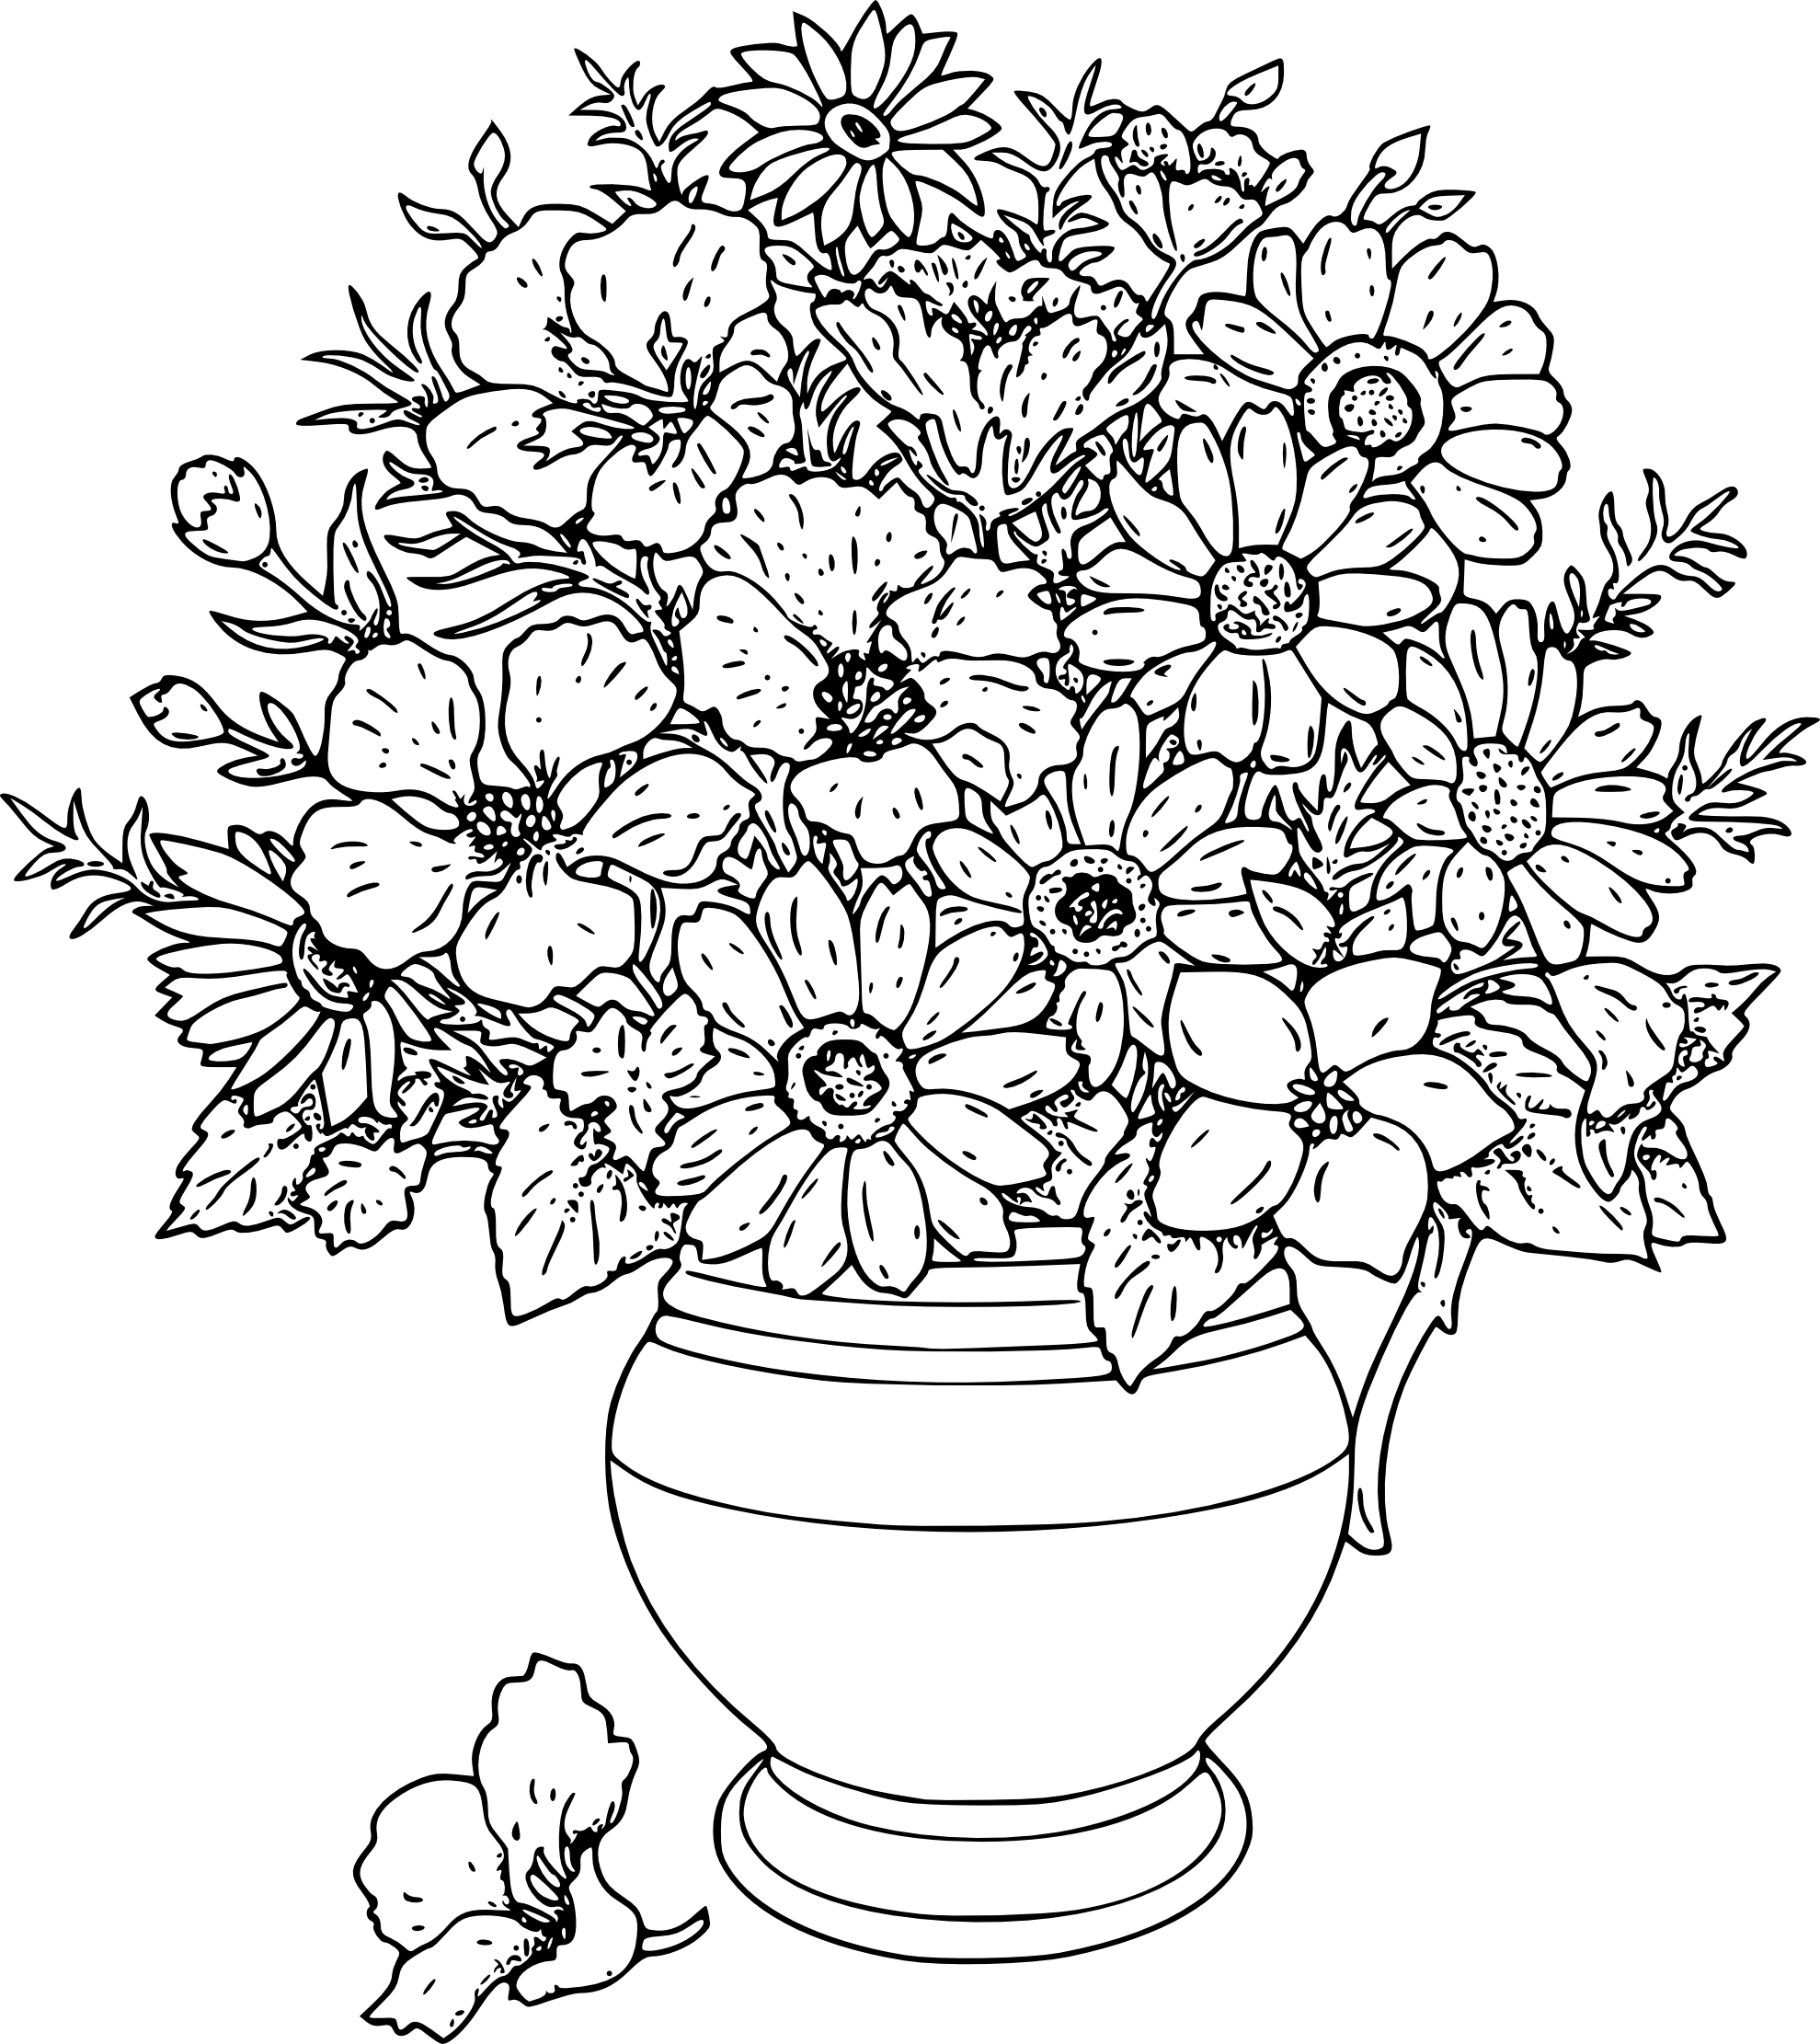 Colouring in pictures of flowers - Line Art Flowers Vase Of Wild Flowers Black White Line Art Coloring Book Colouring